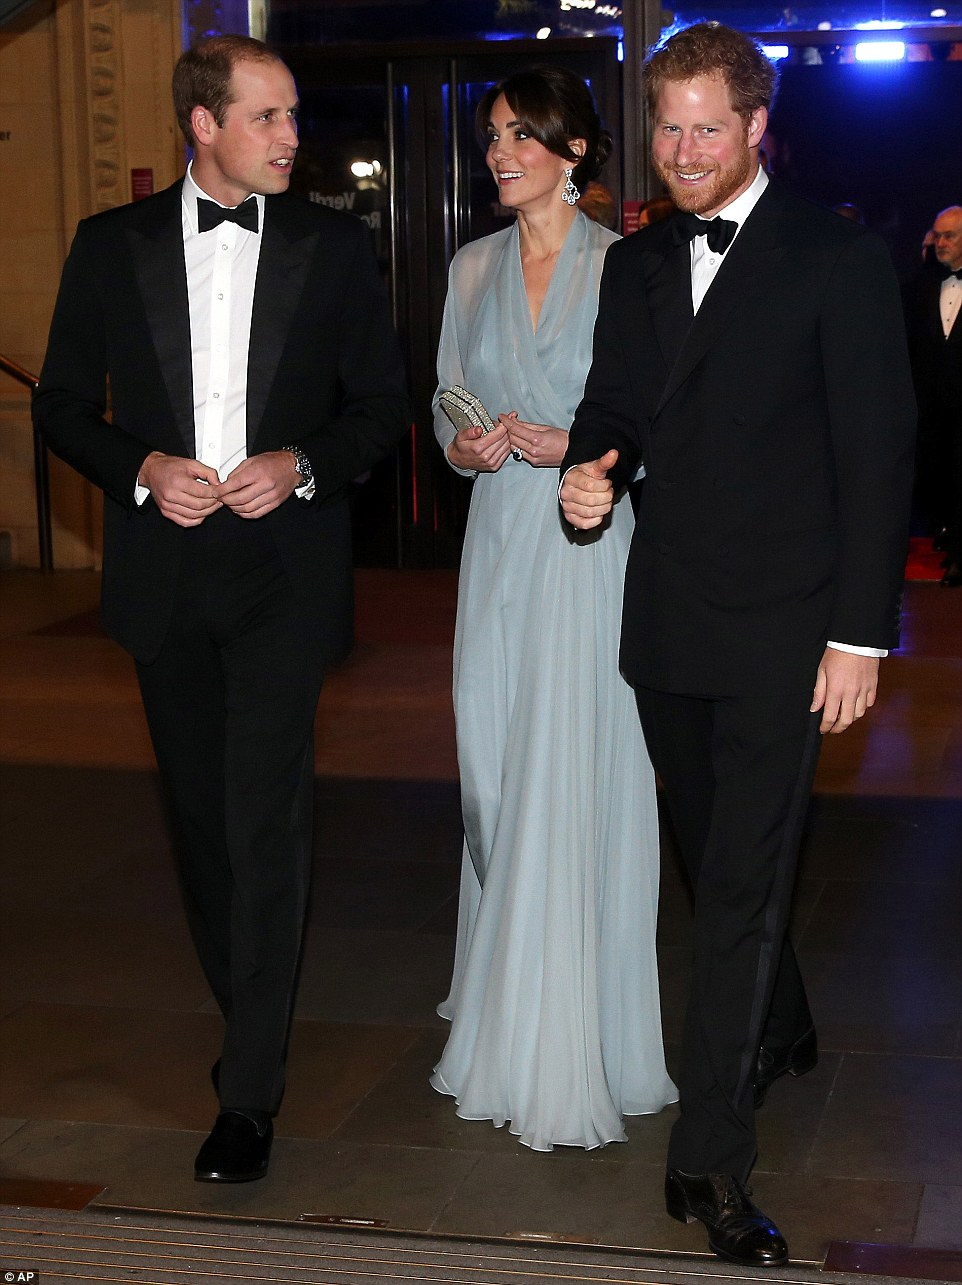 At the Duchess's side - dressed in Bond-style black tie - were her husband, Prince William, and brother-in-law Prince Harry